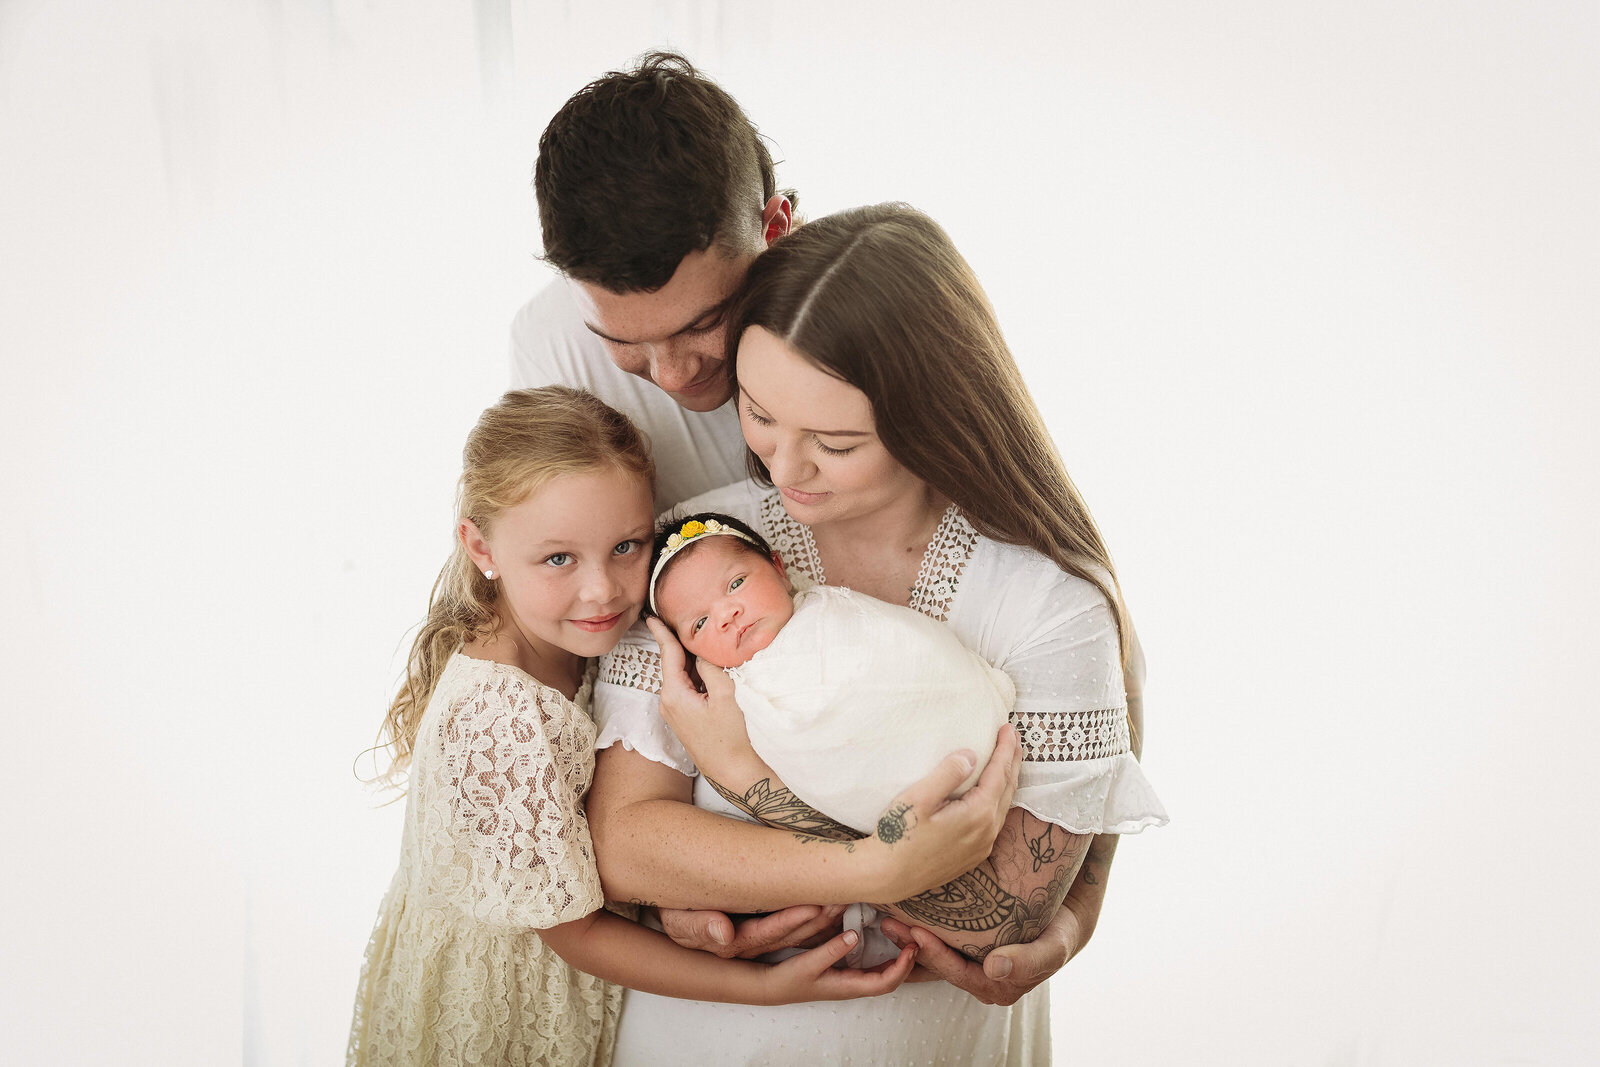 In-studio portrait of family holding newborn baby